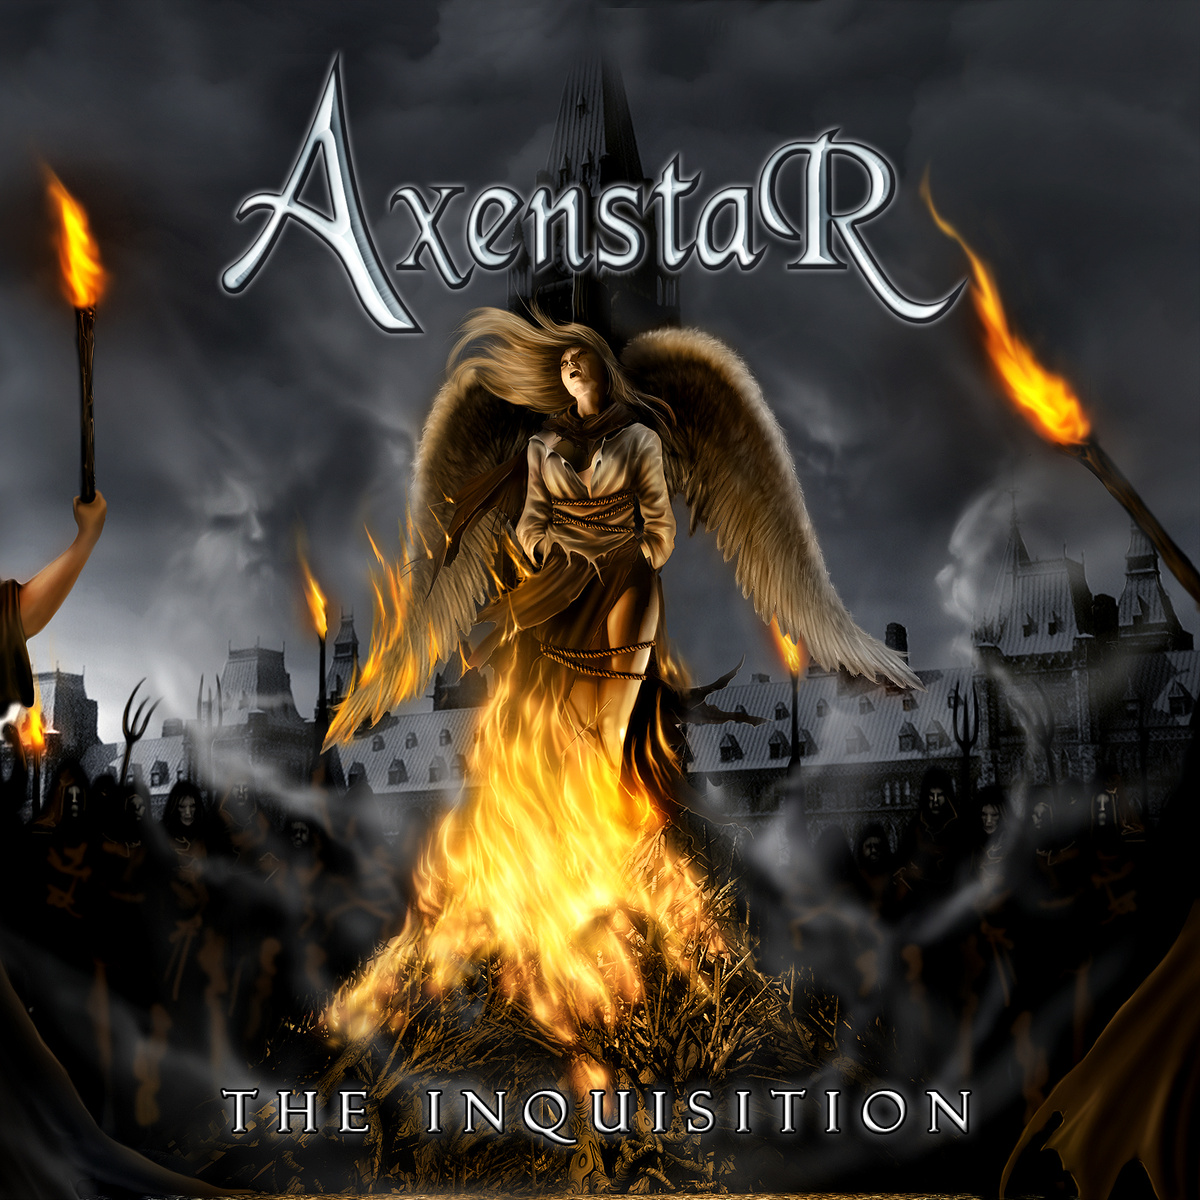 The Inquisition Axenstar